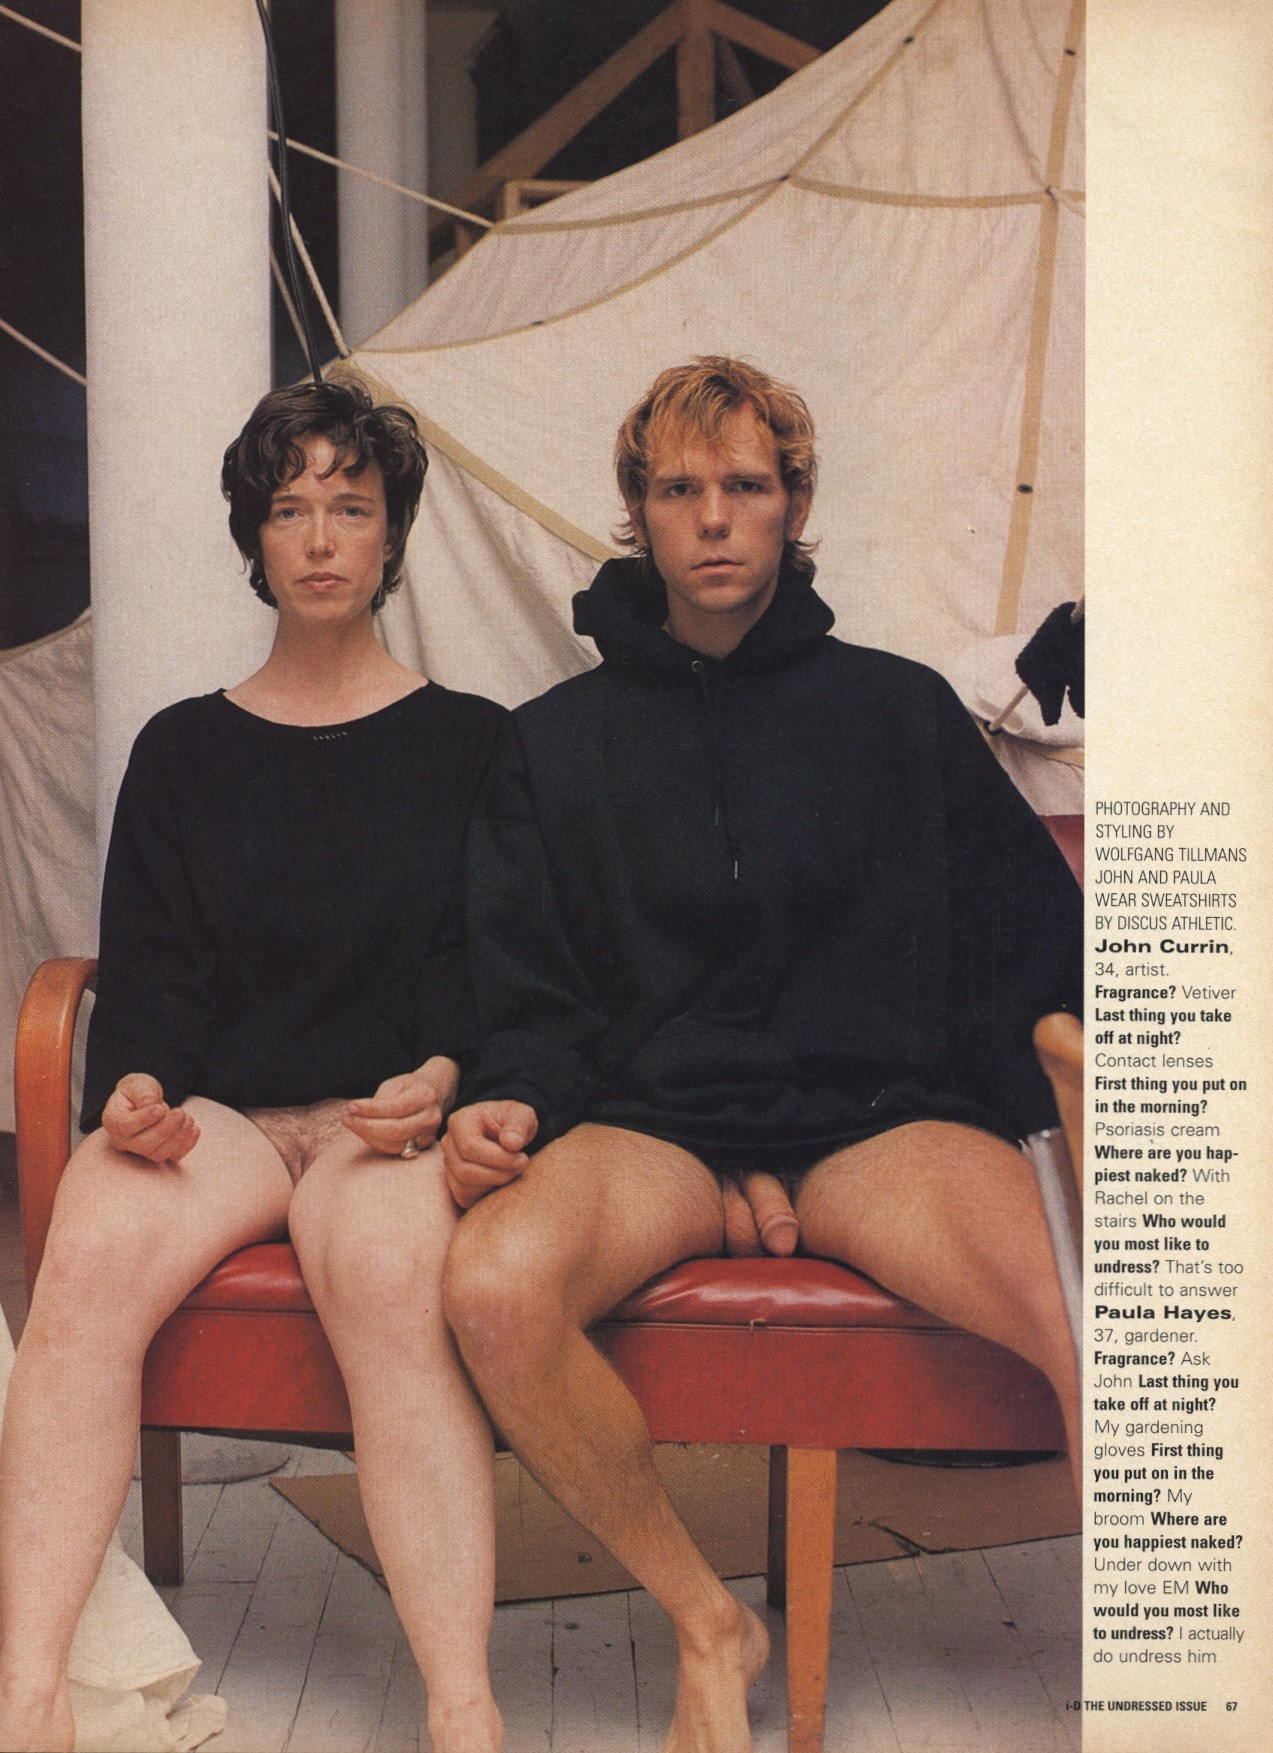 JOHN CURRIN AND PAULA HAYES | PHOTOGRAPHY AND STYLING BY WOLFGANG TILLMANS | i-D MAGAZINE NO.159 | DECEMBER 1996